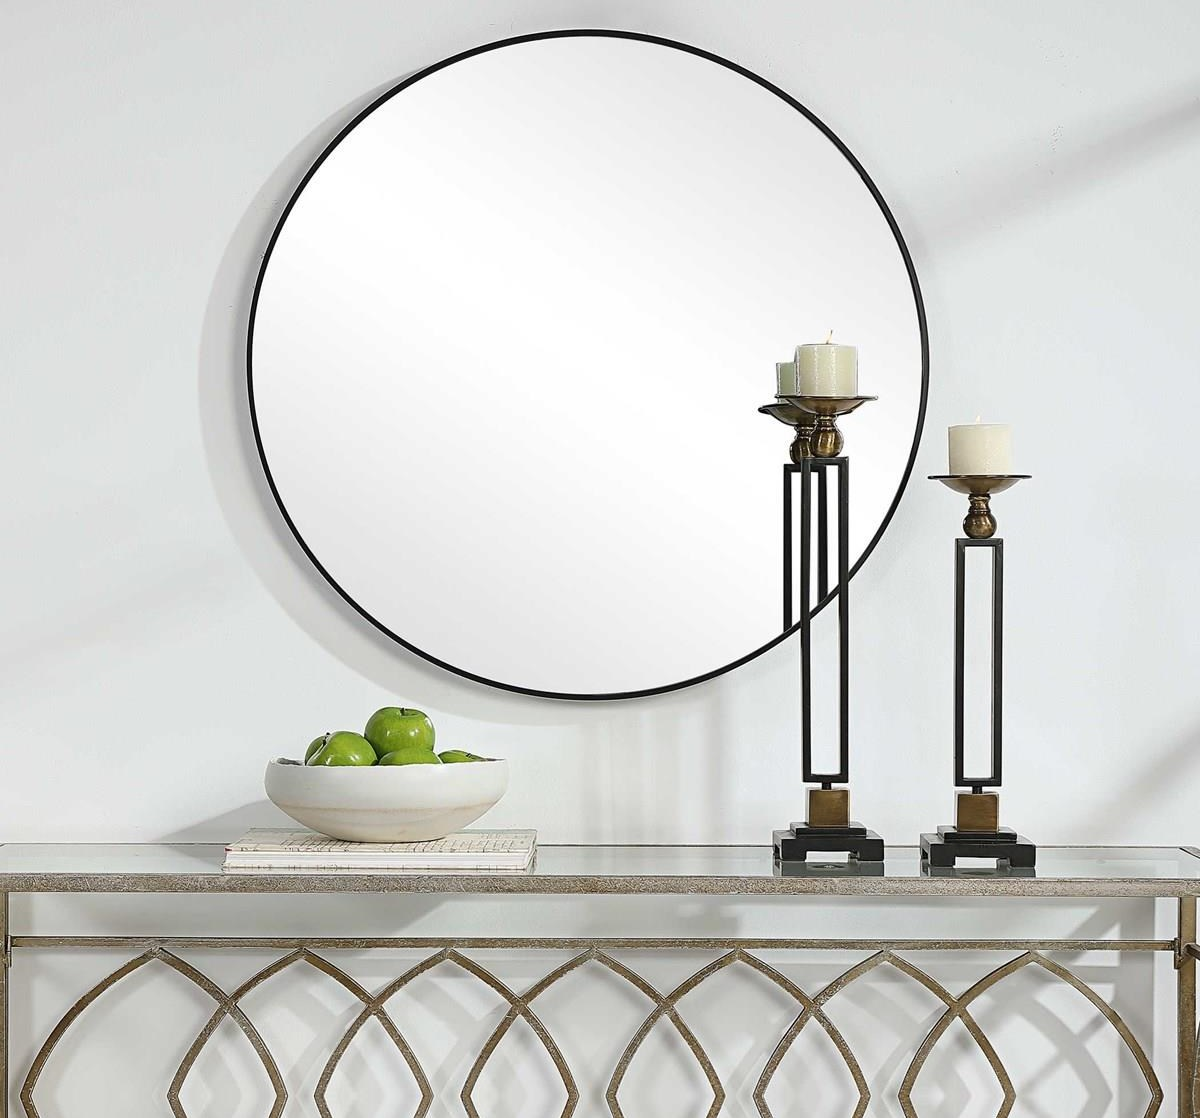 Mirrors ADELINE WALL MIRROR by Unique at Walker's Furniture